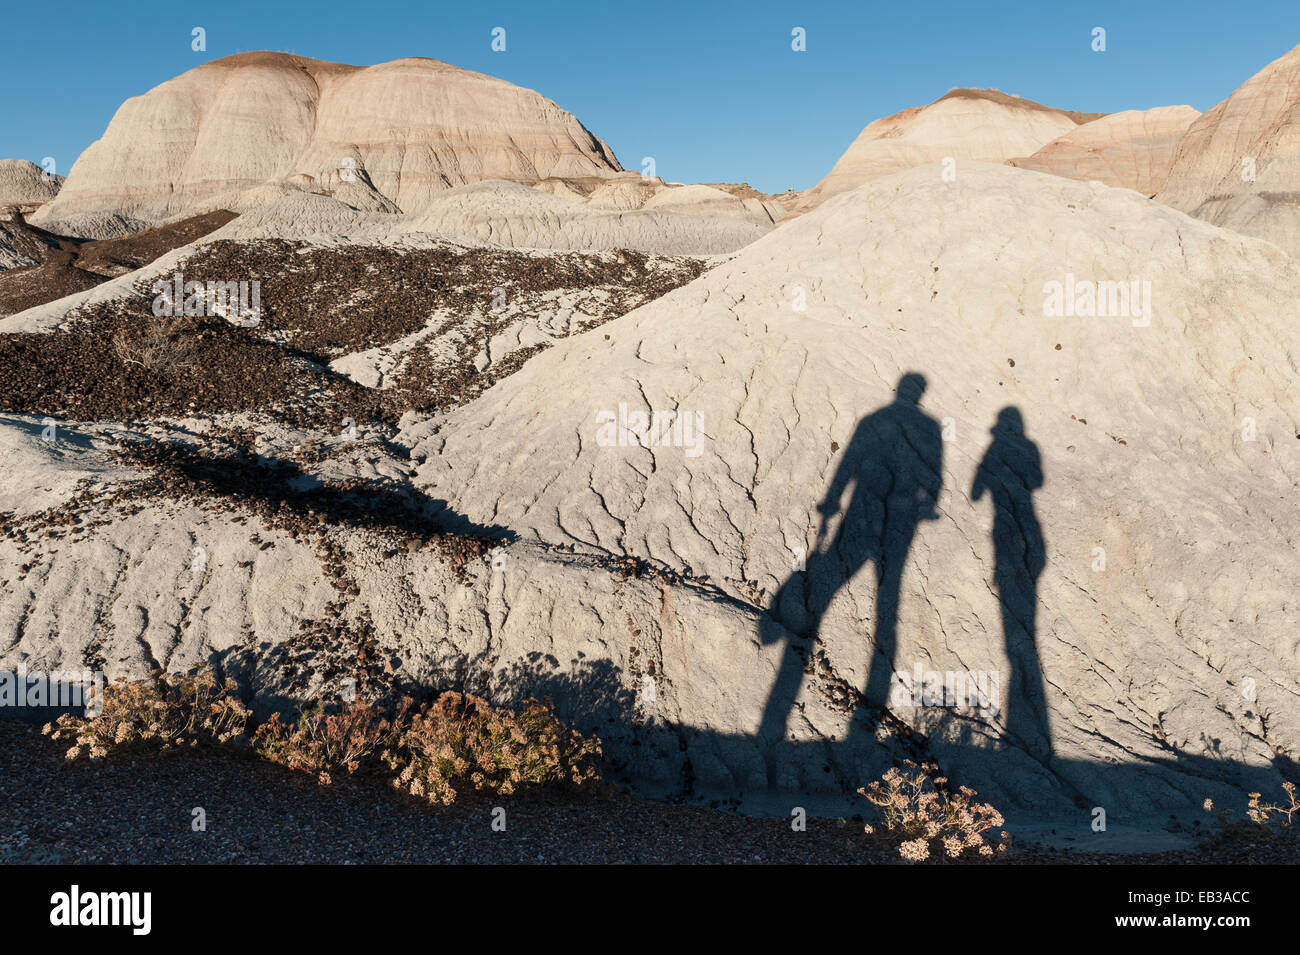 USA, Arizona, Petrified Forest National Park, Blue Mesa Trail, Shadow of hikers - Stock Image